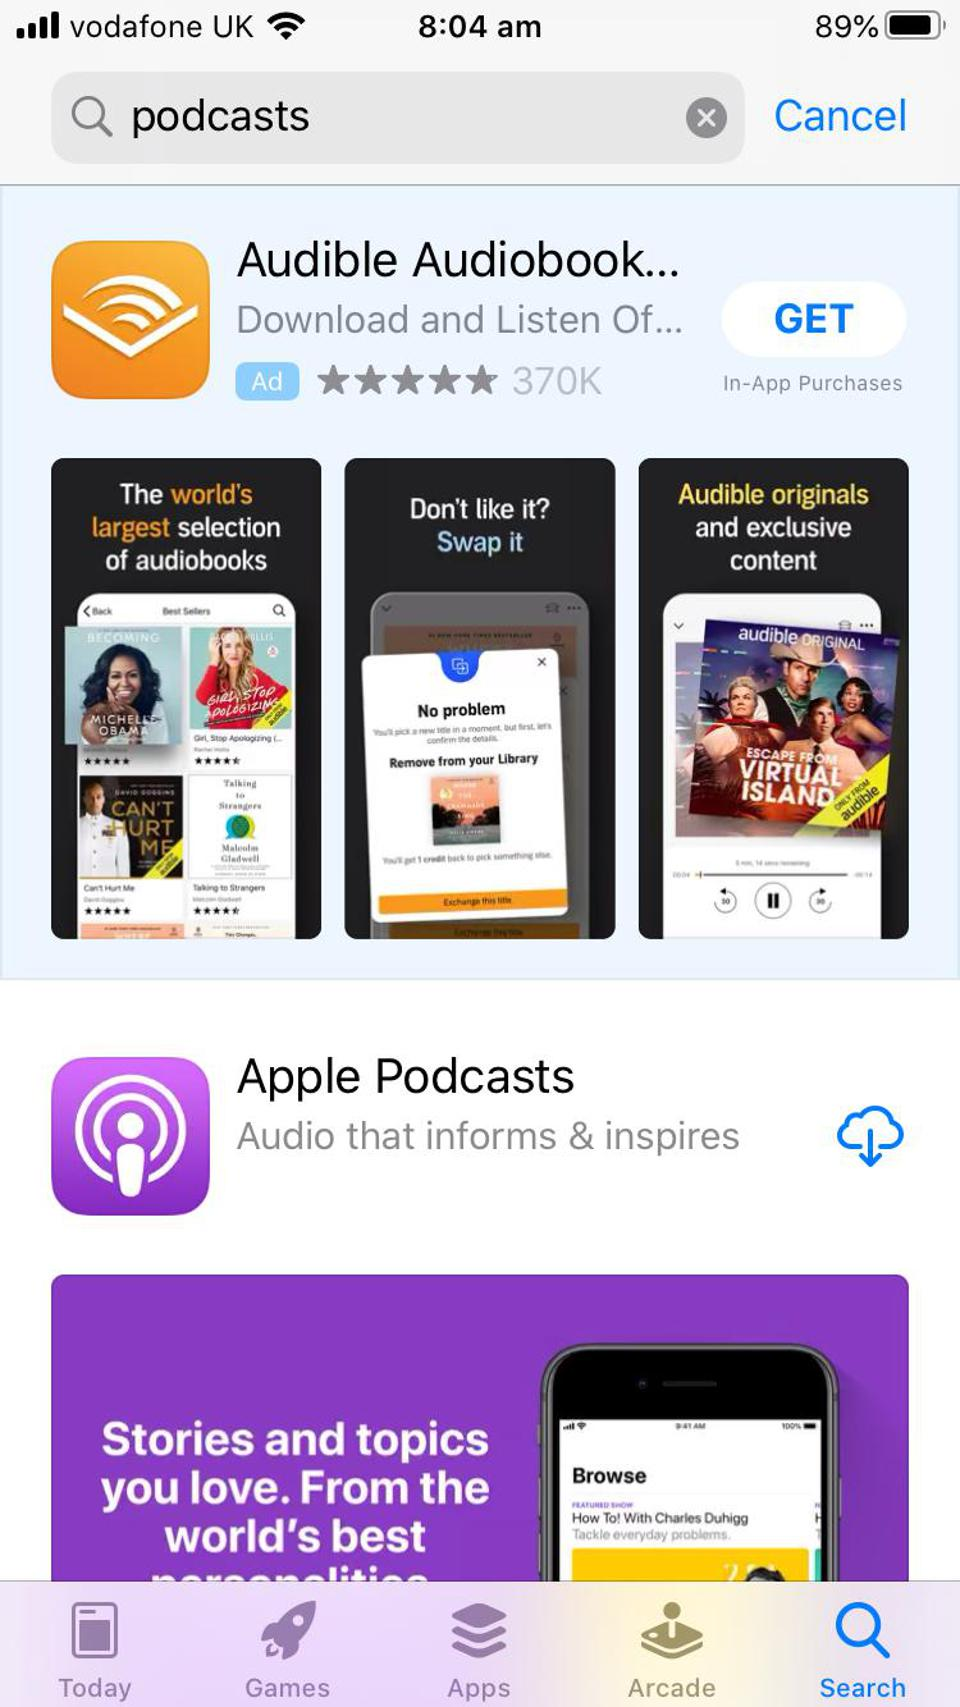 Search results for ″podcasts' in the iOS App Store